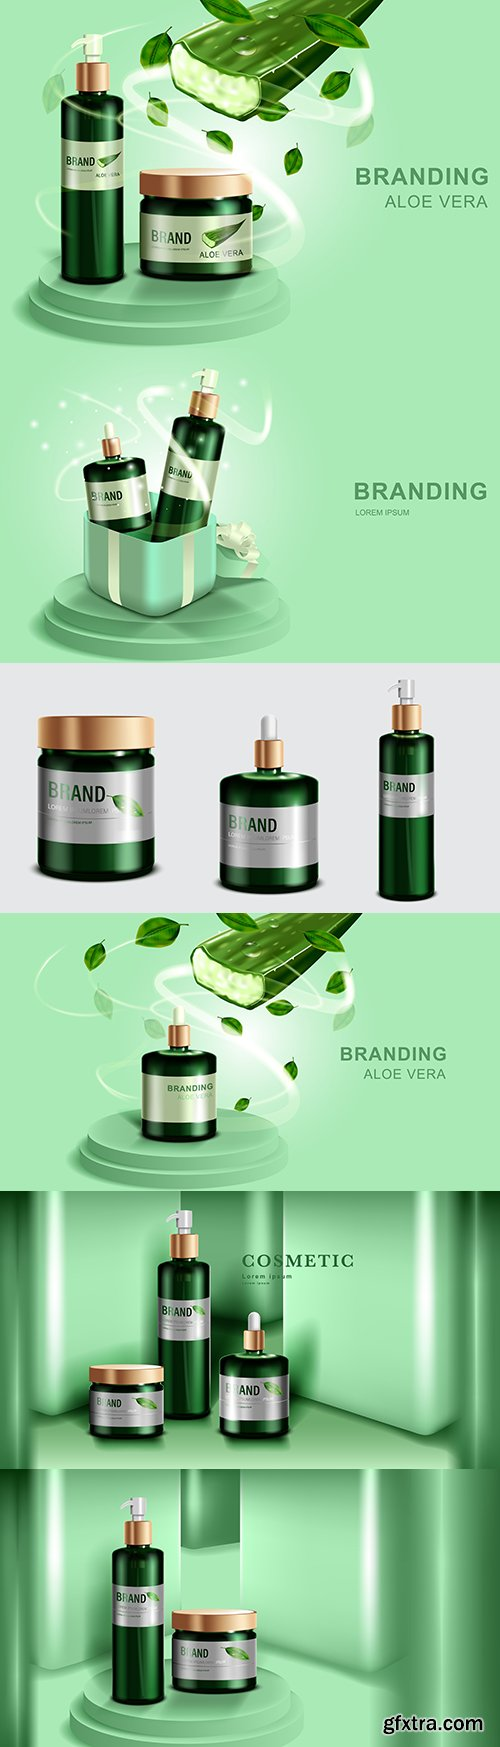 Cosmetics and skin care products model green bottle